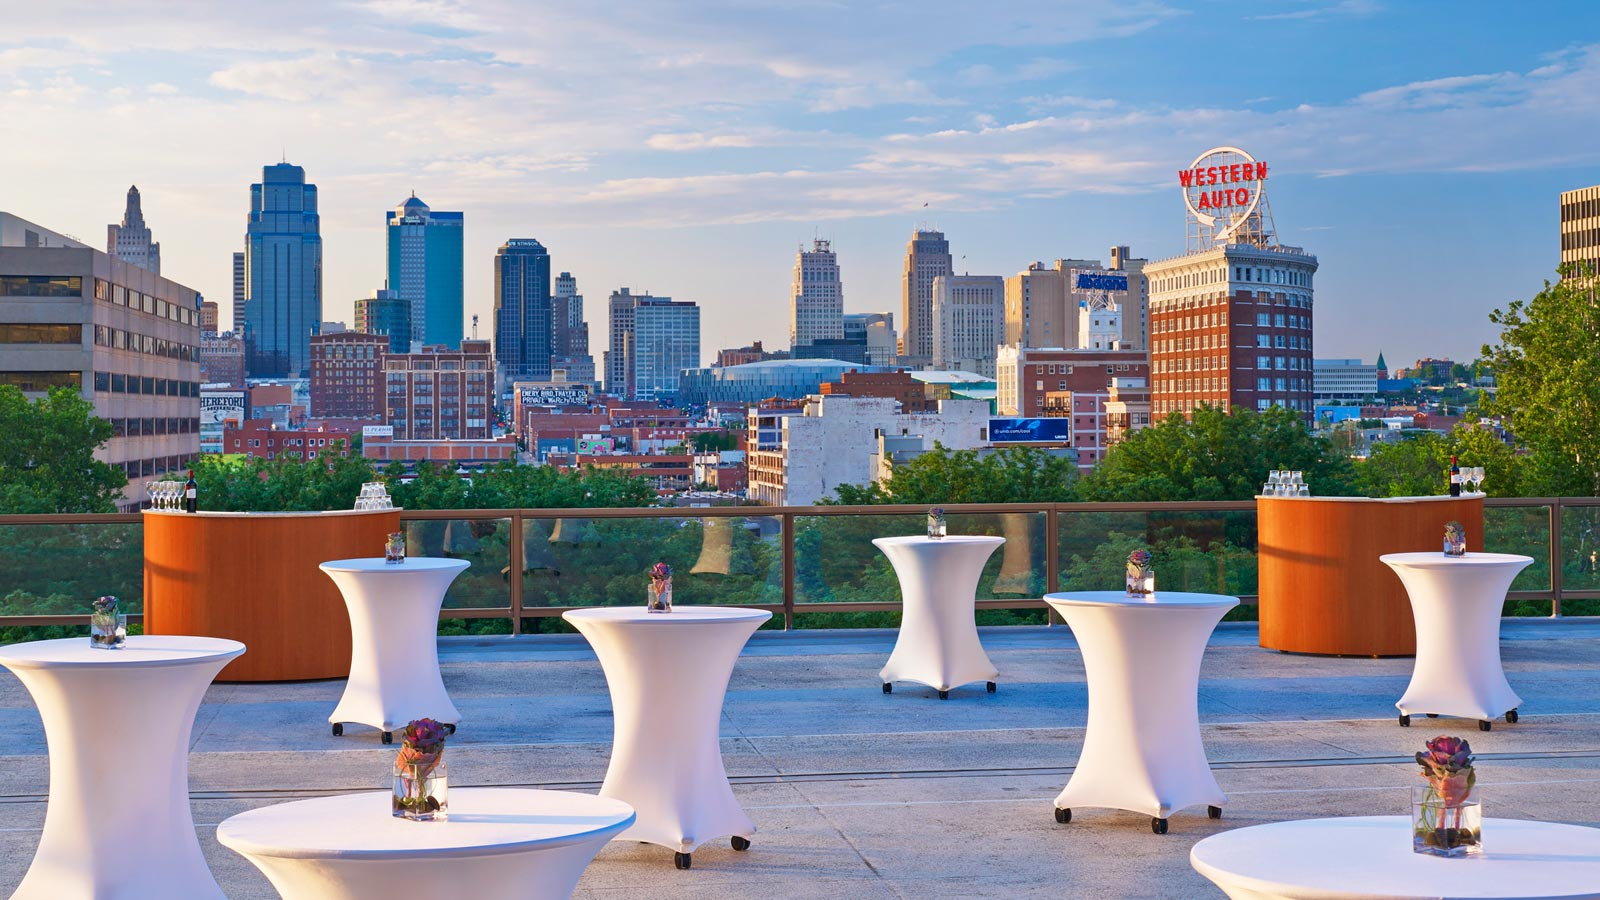 Wedding venues in kansas city the westin kansas city at crown center elegant venues spaces set the stage for a one of a kind kansas city wedding junglespirit Image collections